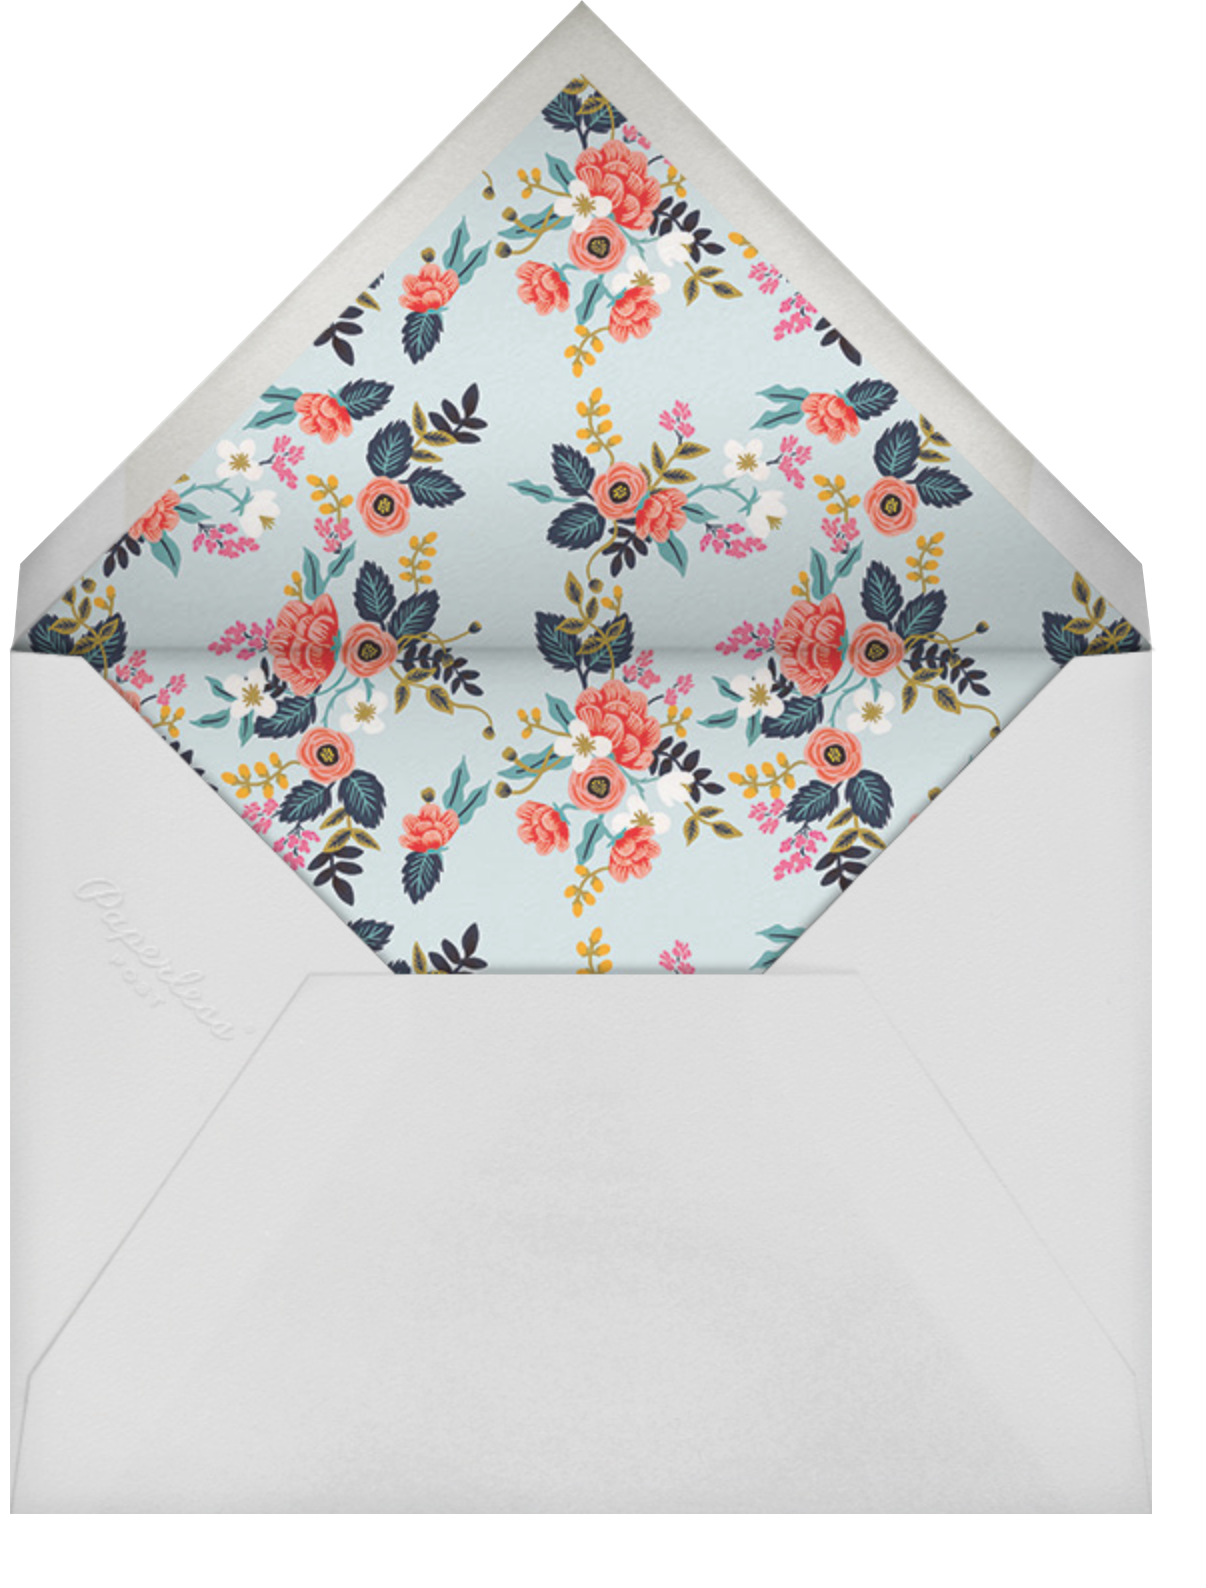 Birch Monarch (Frame) - White - Rifle Paper Co. - Happy hour - envelope back